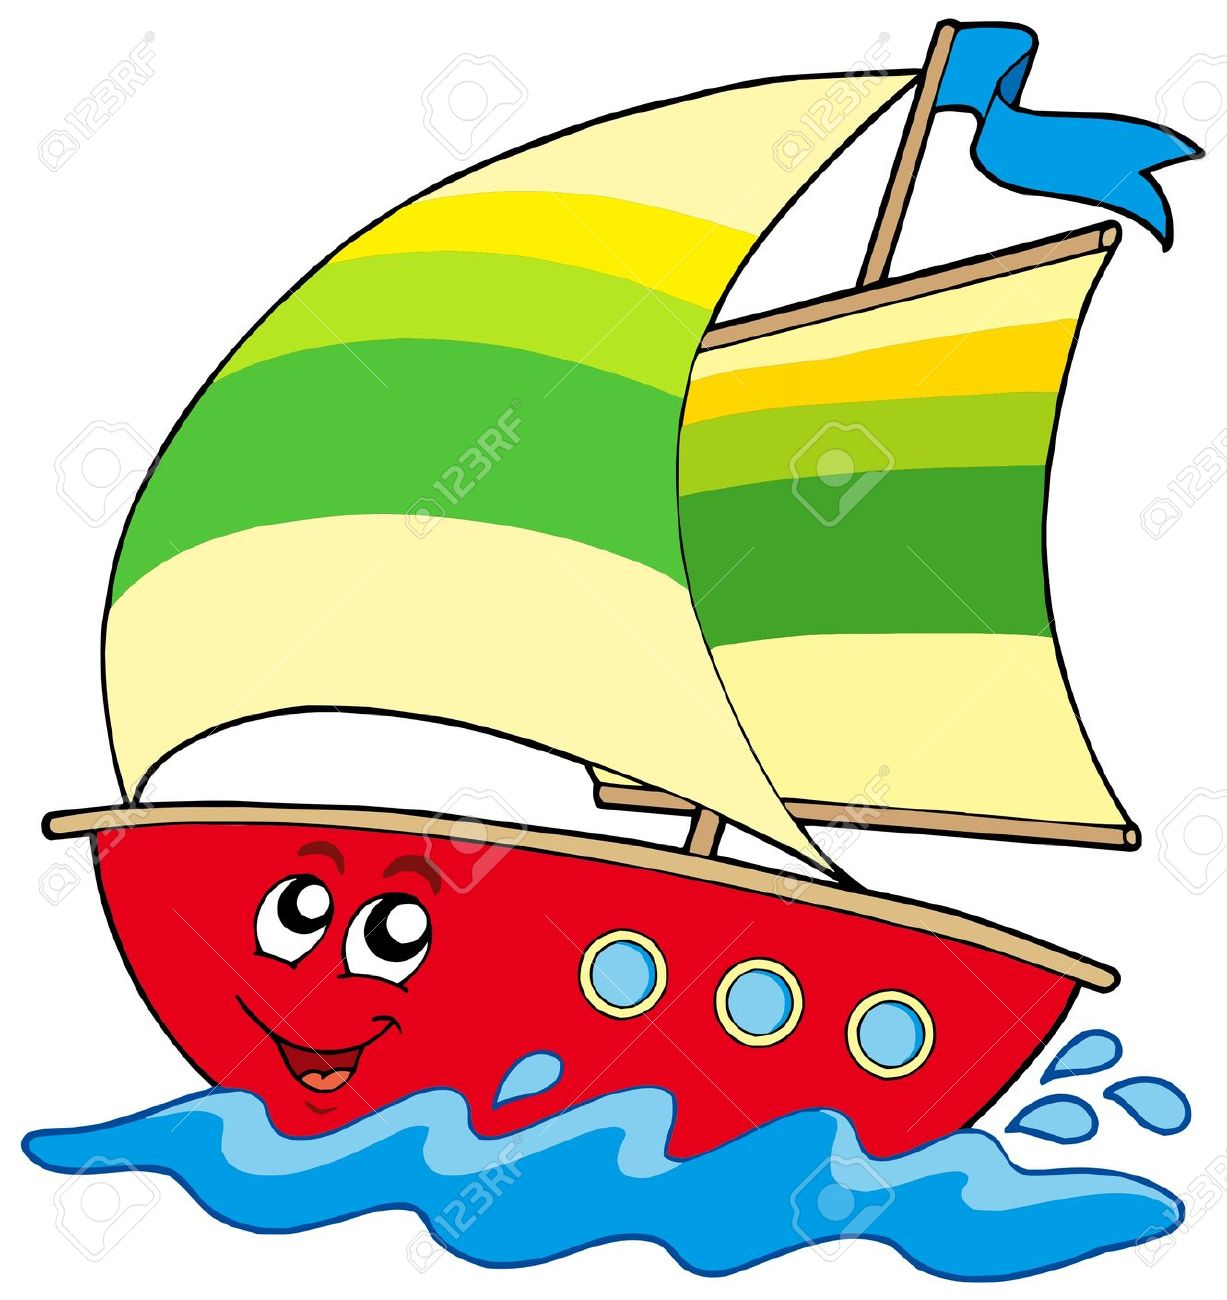 1227x1300 Collection Of Images Of Yacht Clipart High Quality, Free